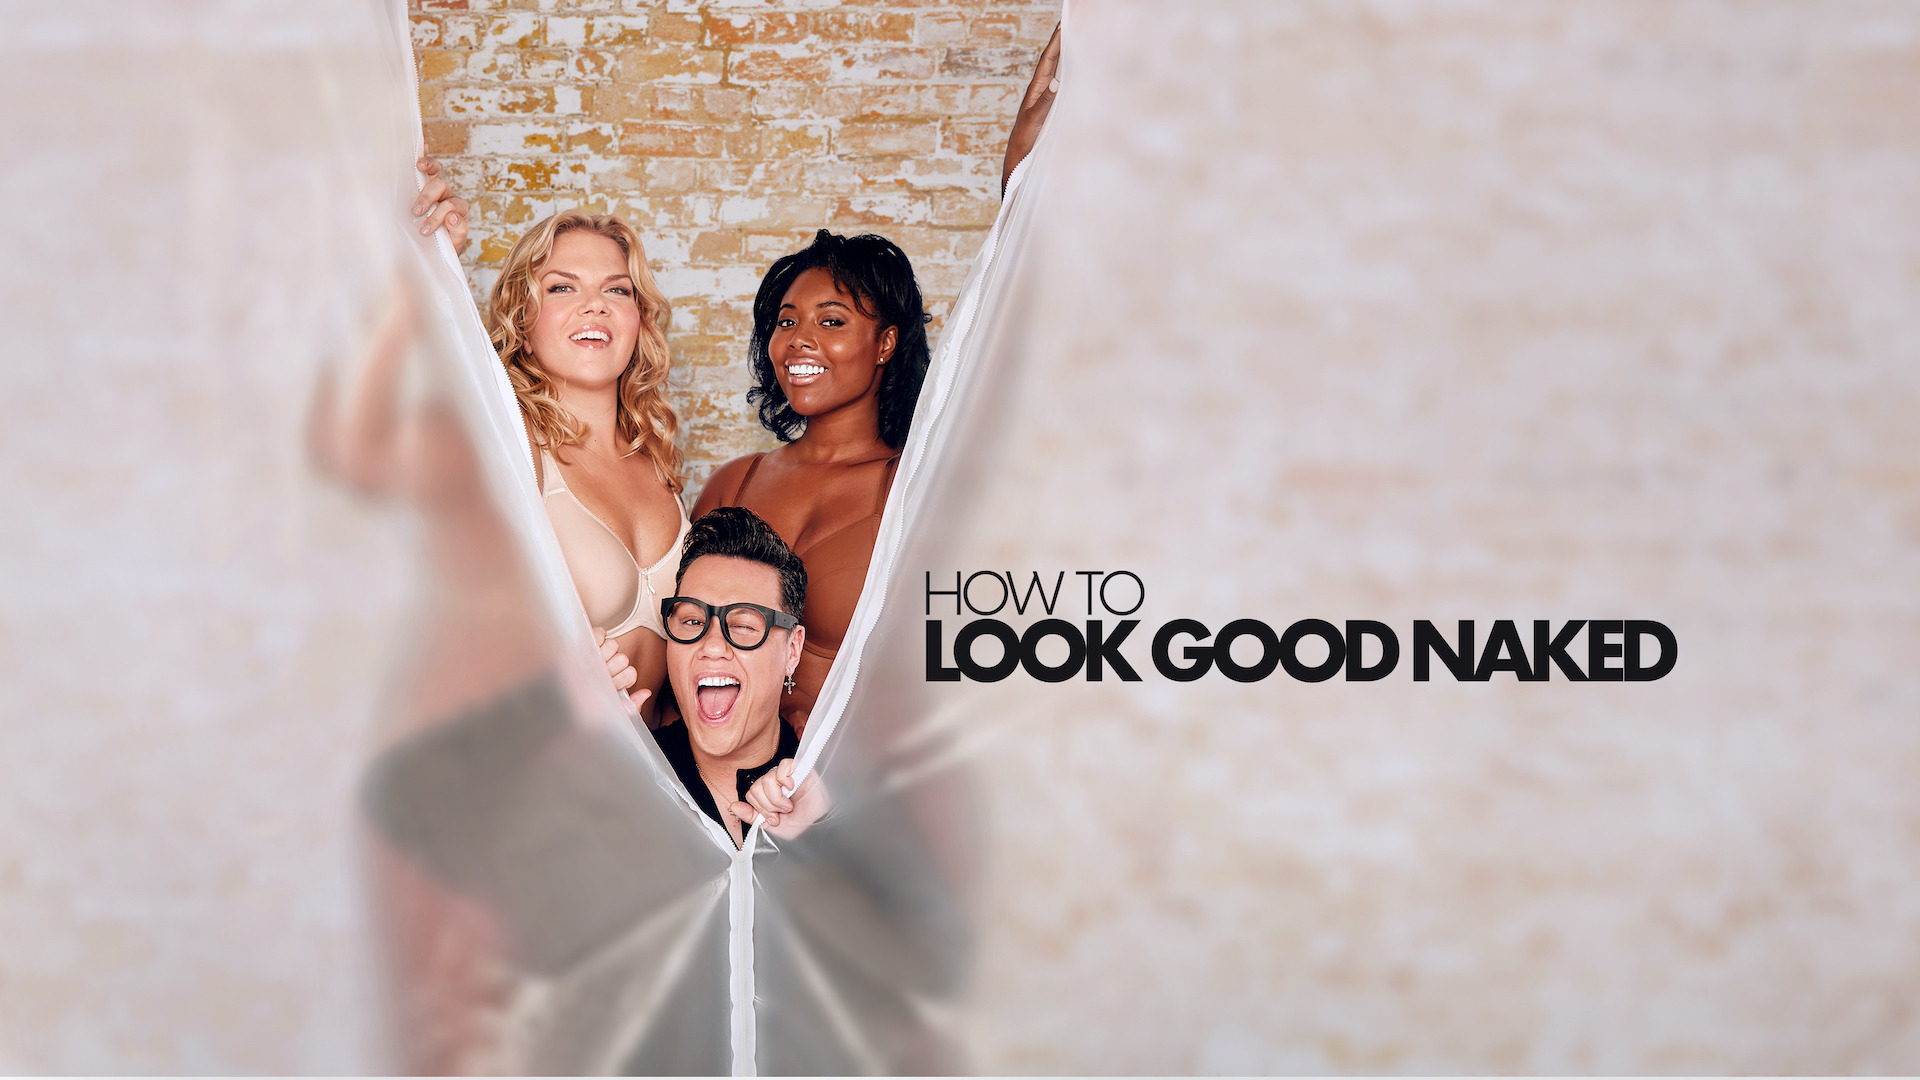 Show How to Look Good Naked